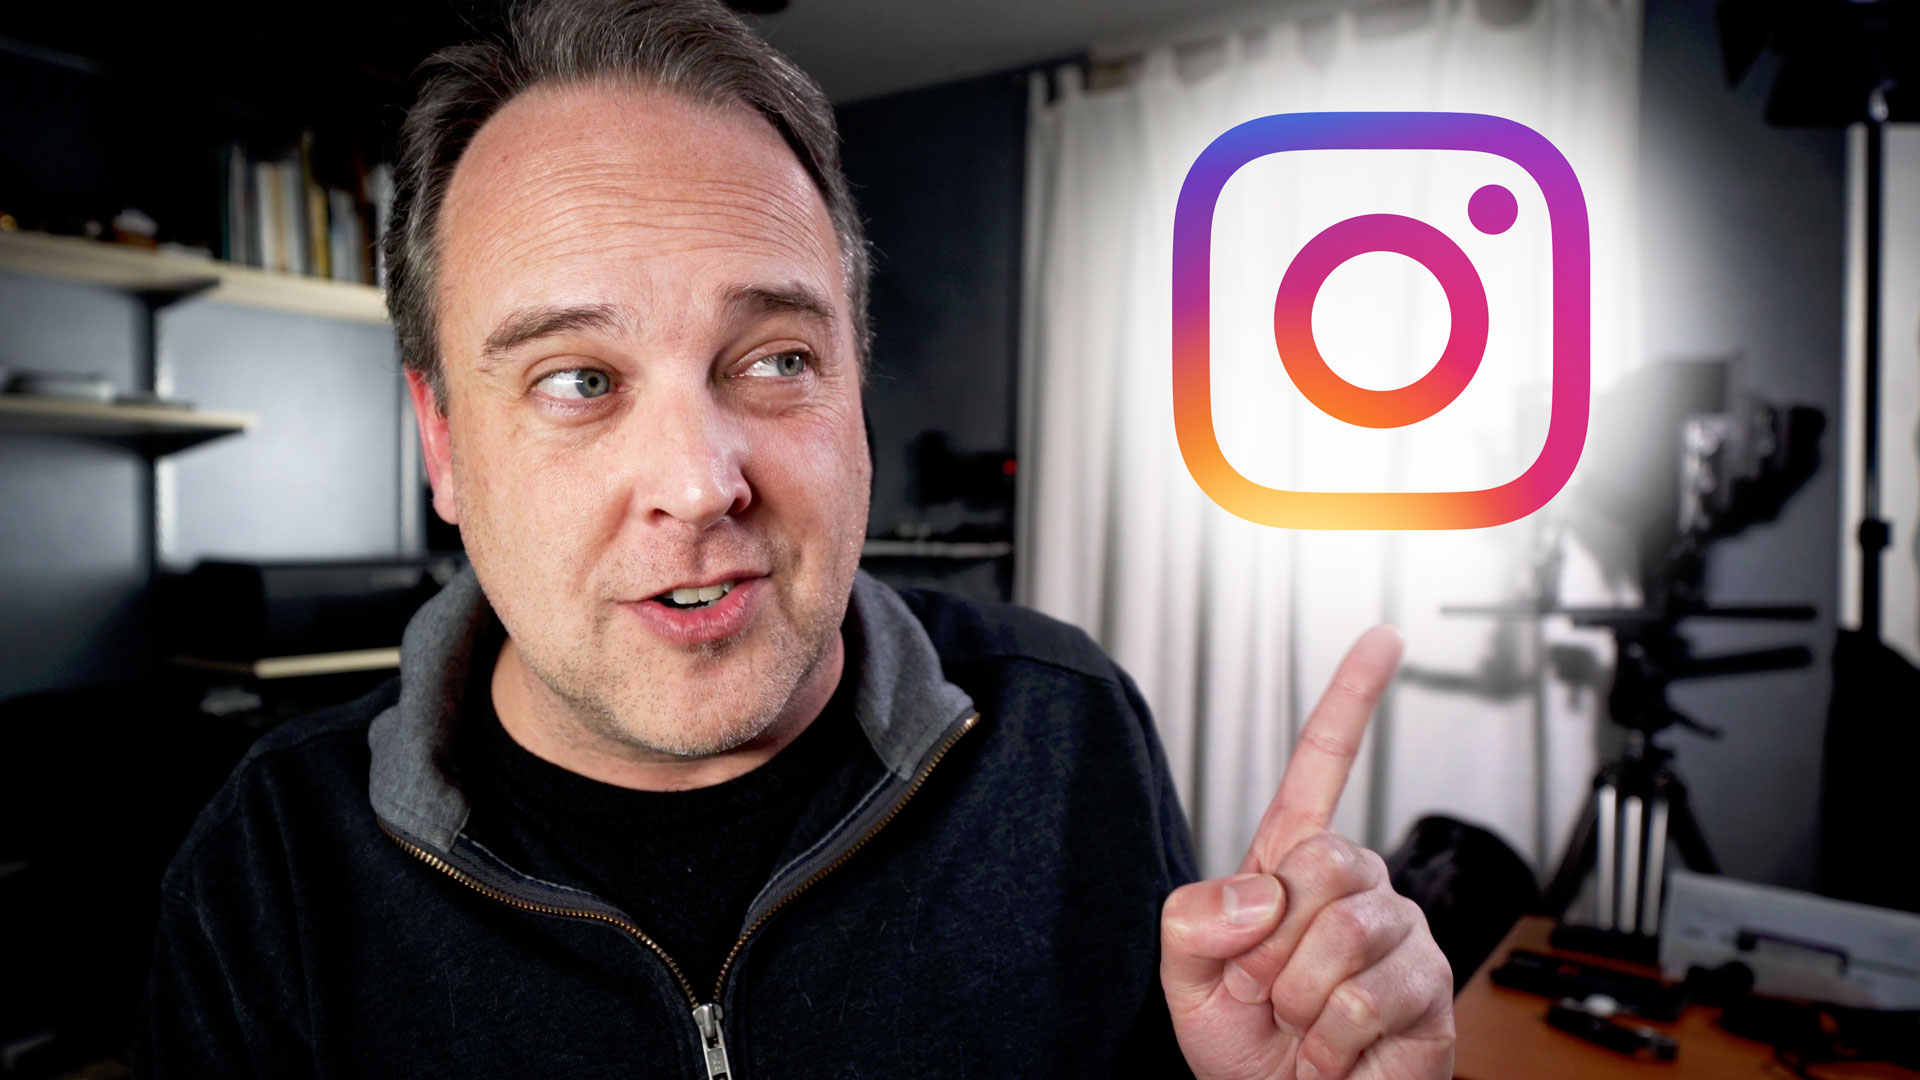 Fired from CANON! The Instagram Problem